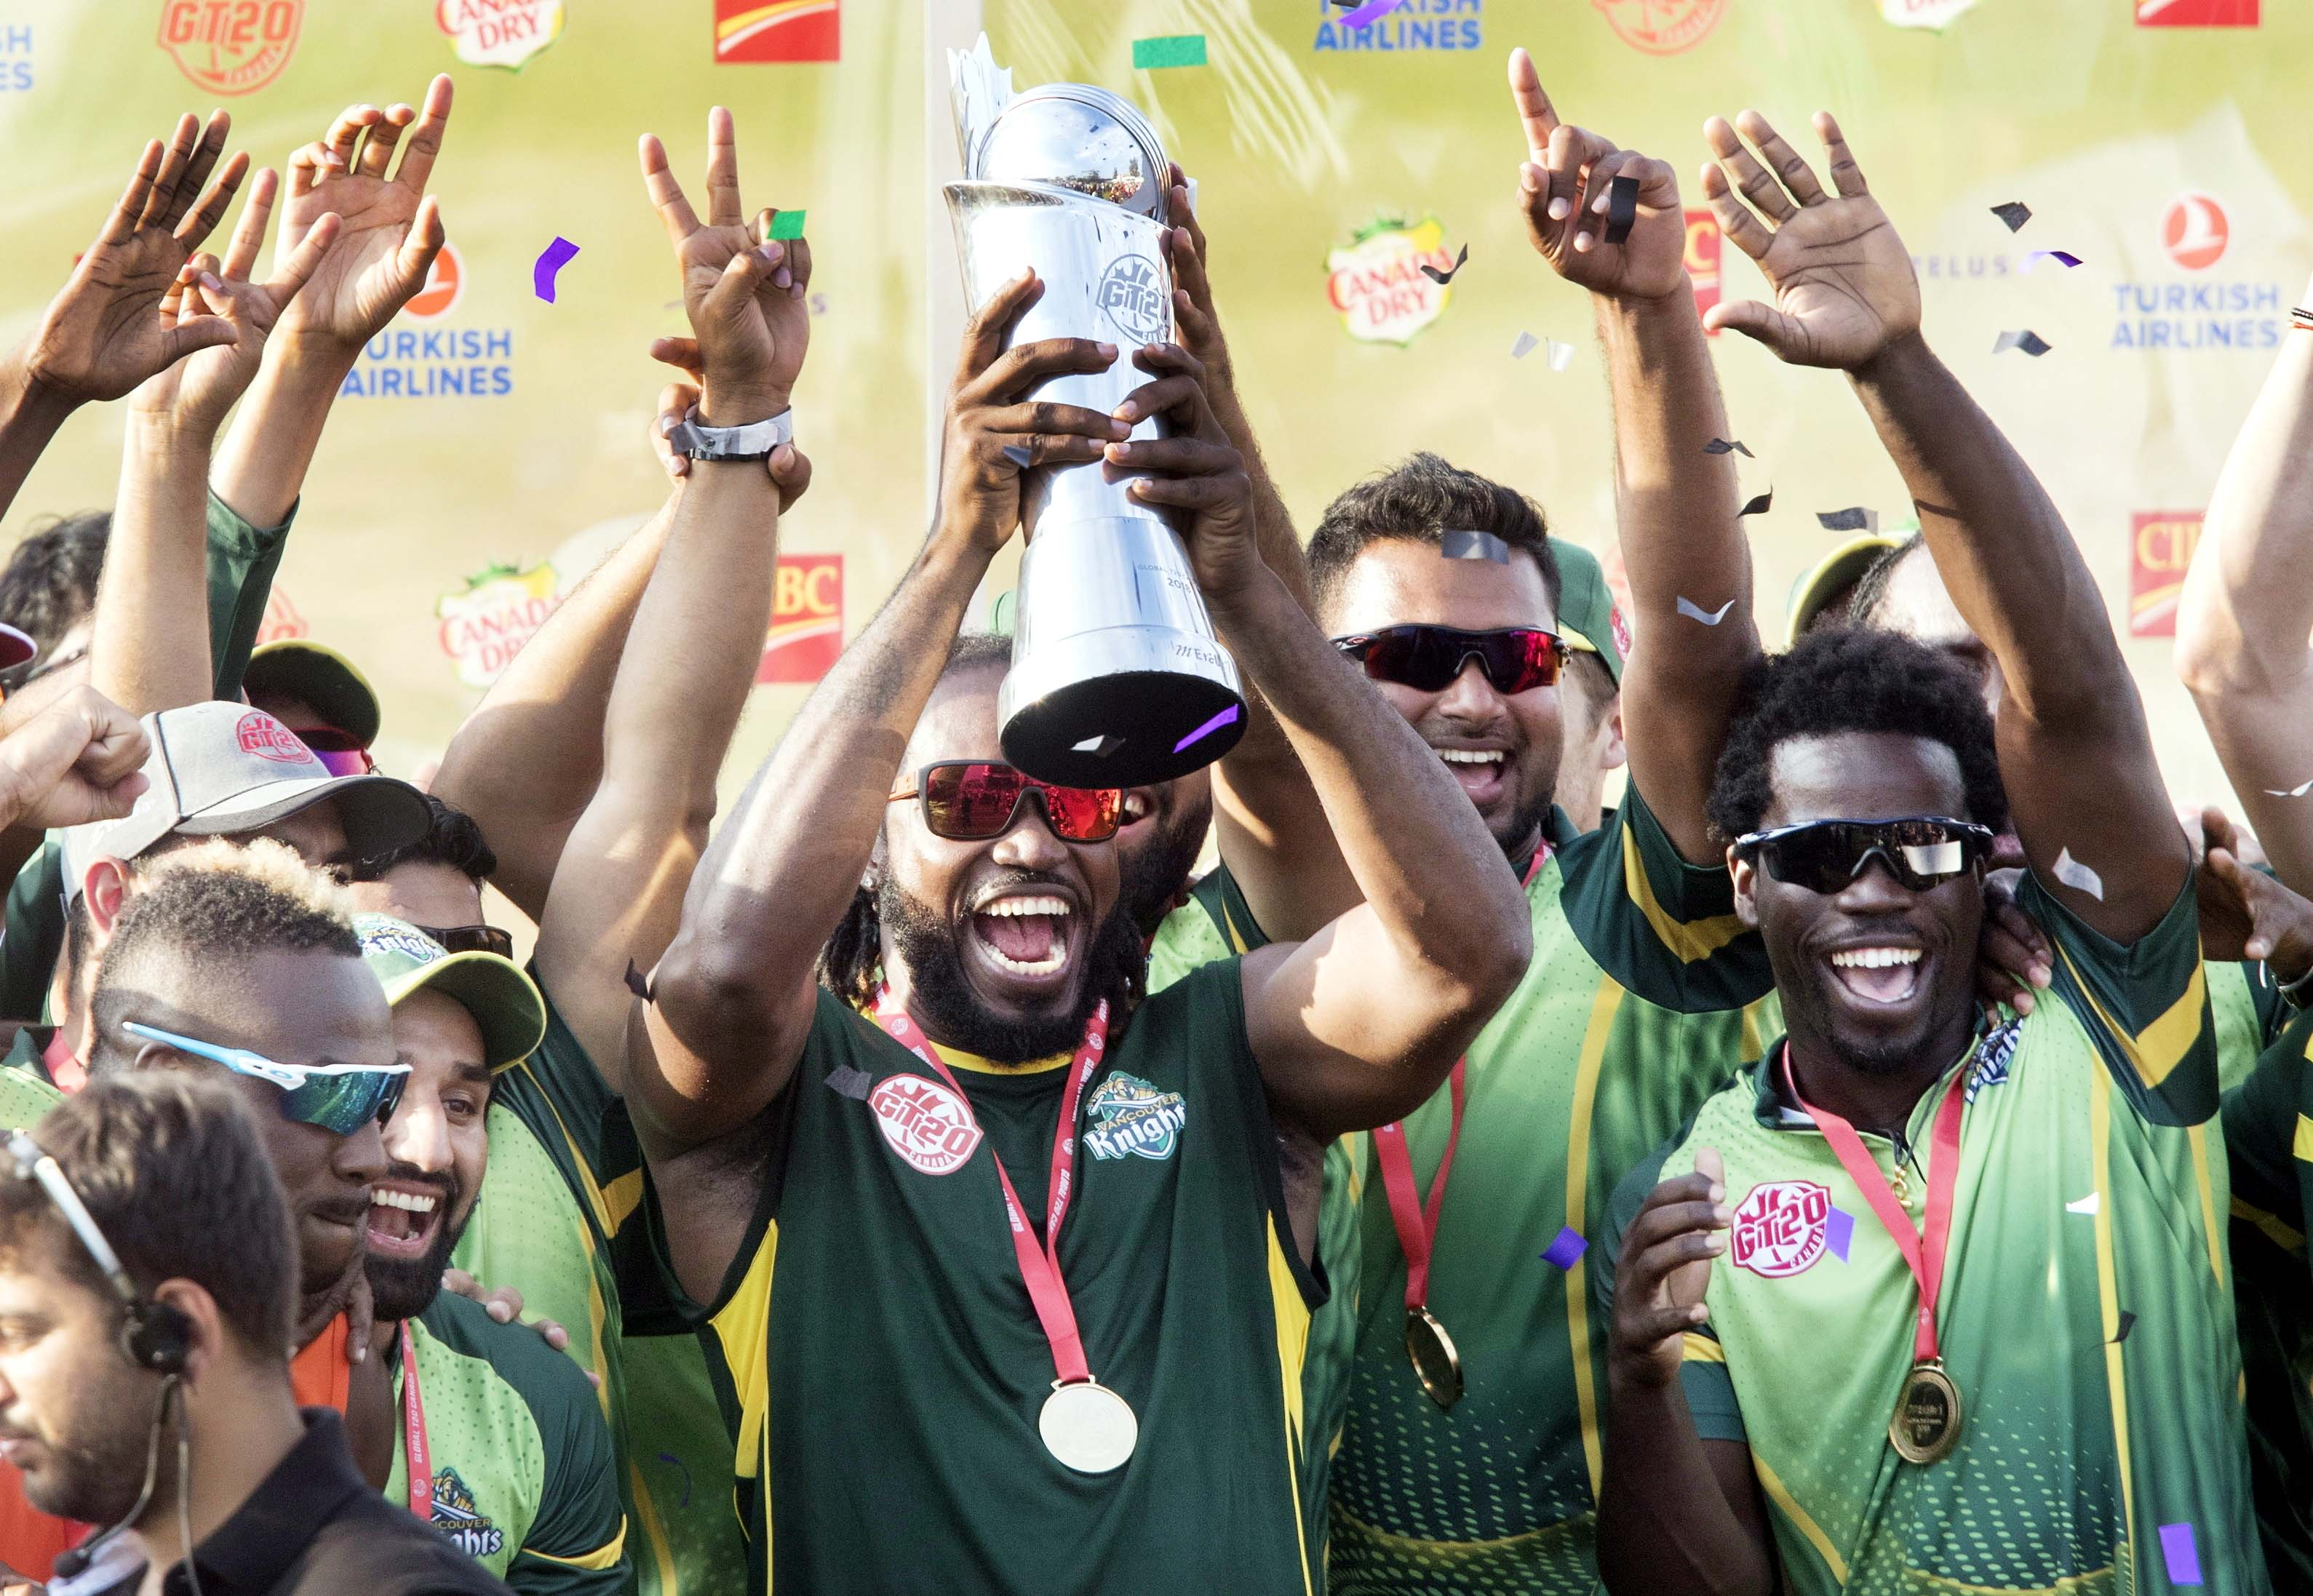 Vancouver Knights' Chris Gayle holds up the trophy after his team defeated the West Indies B Team in their final of the Global T20 Canada cricket tournament in King City, Ontario, on Sunday.